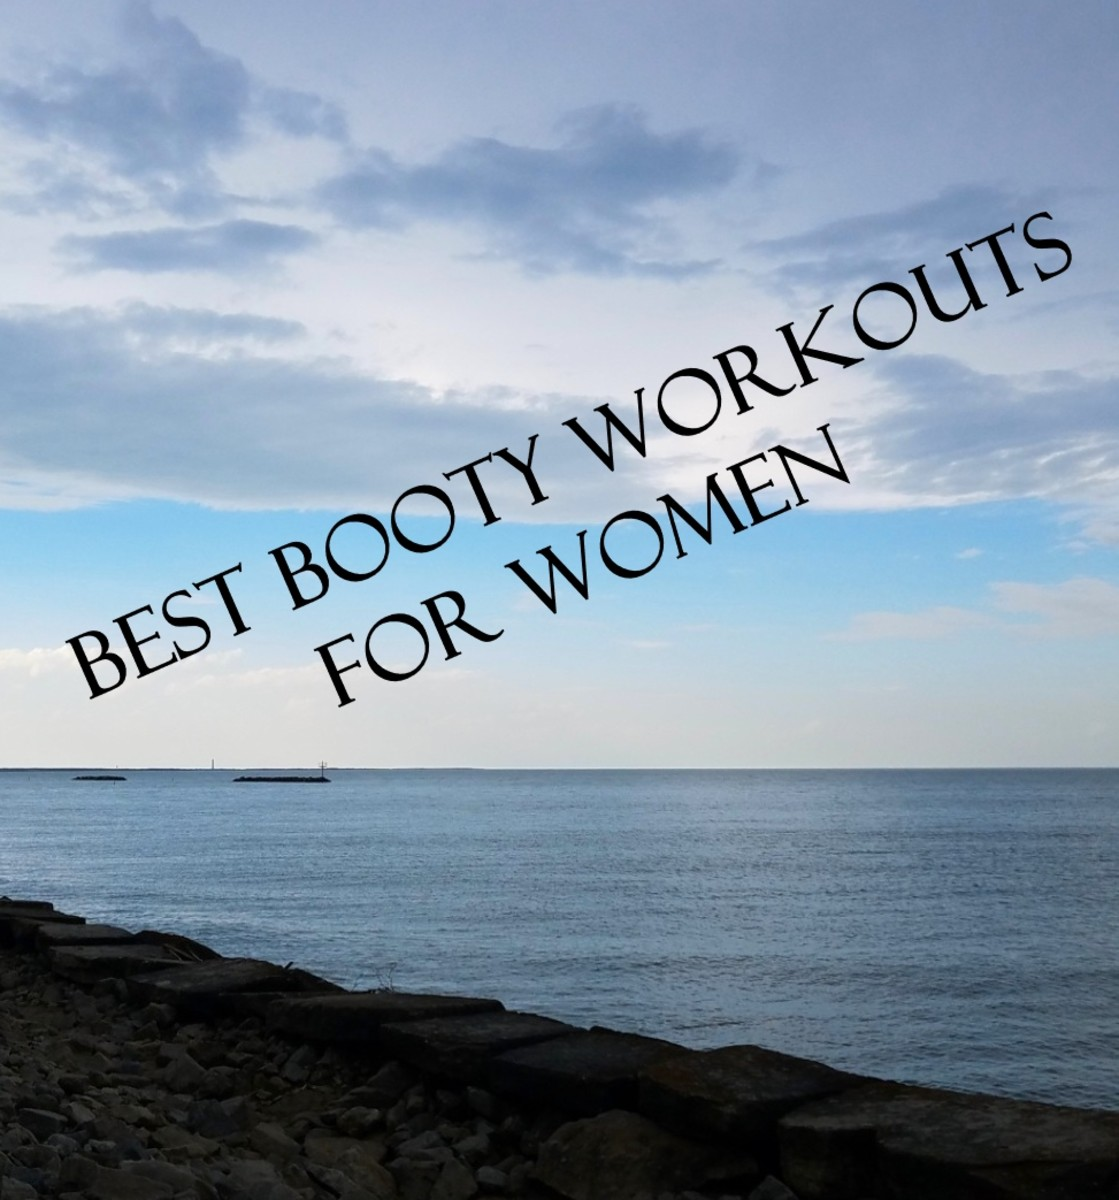 Best Booty Workouts for Women